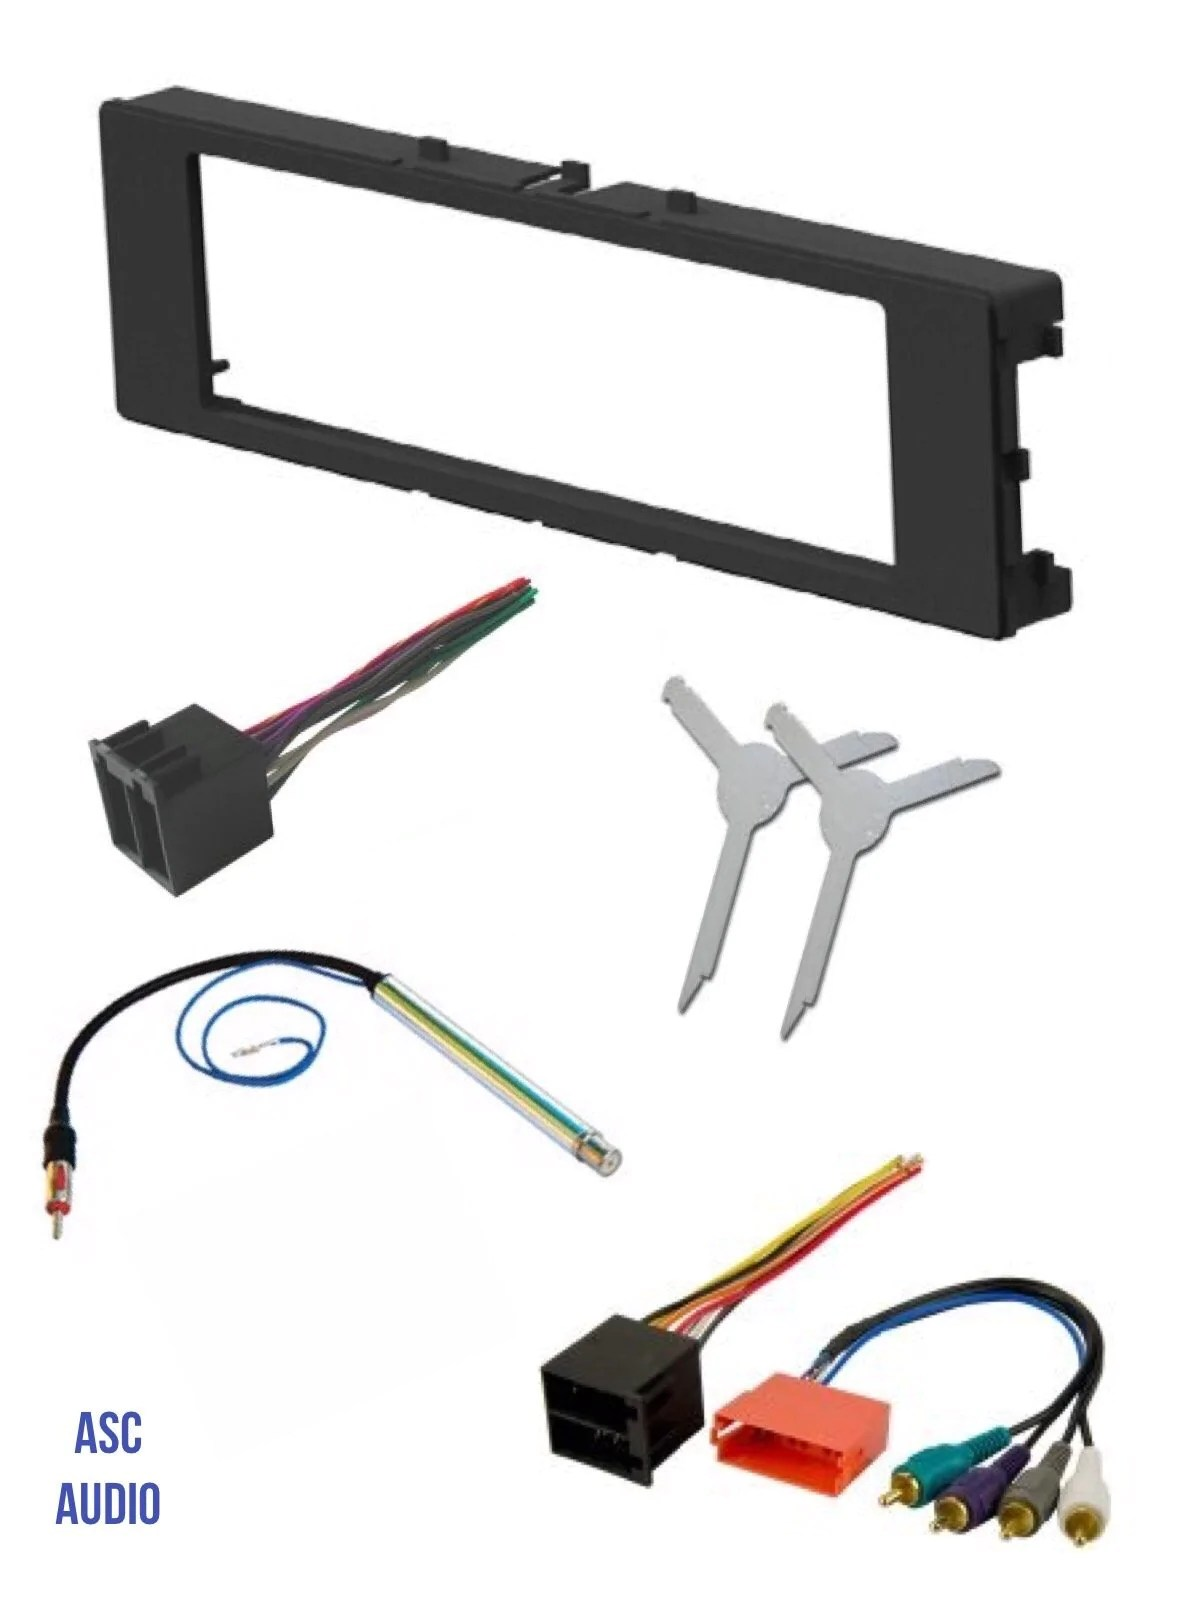 asc car stereo install dash kit wire harness antenna adapter and radio removal tool for instal  [ 1200 x 1612 Pixel ]